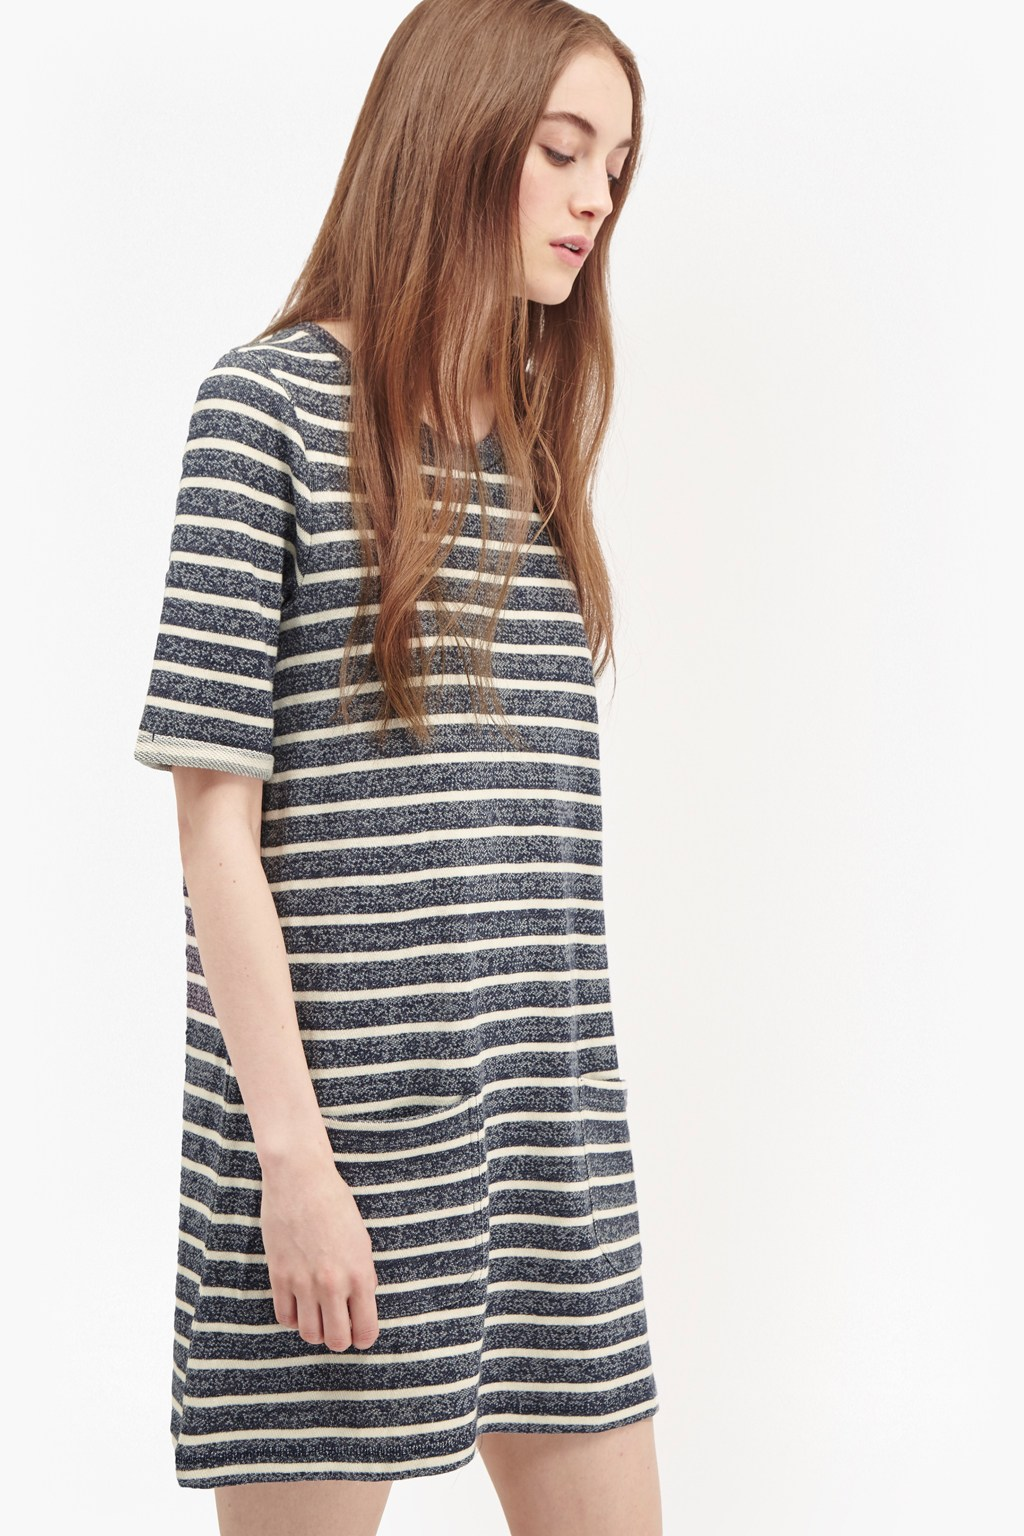 Normandy stripe t shirt dress collections french for French connection t shirt dress